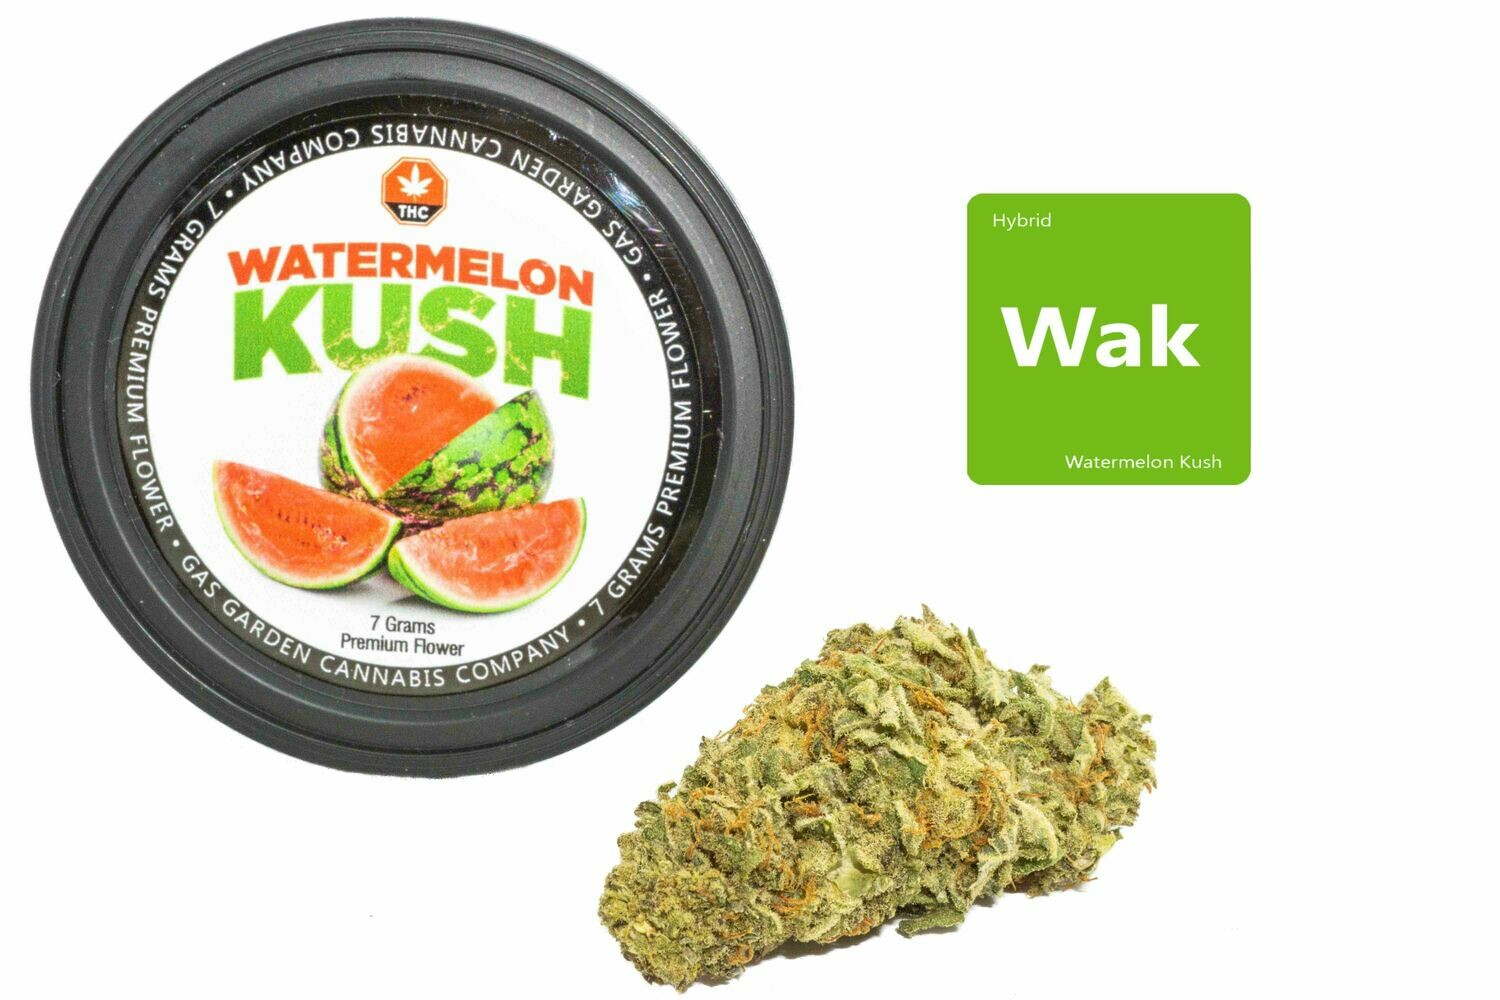 Watermelon Kush (7g Premium Flower Tin Can) By Gas Garden